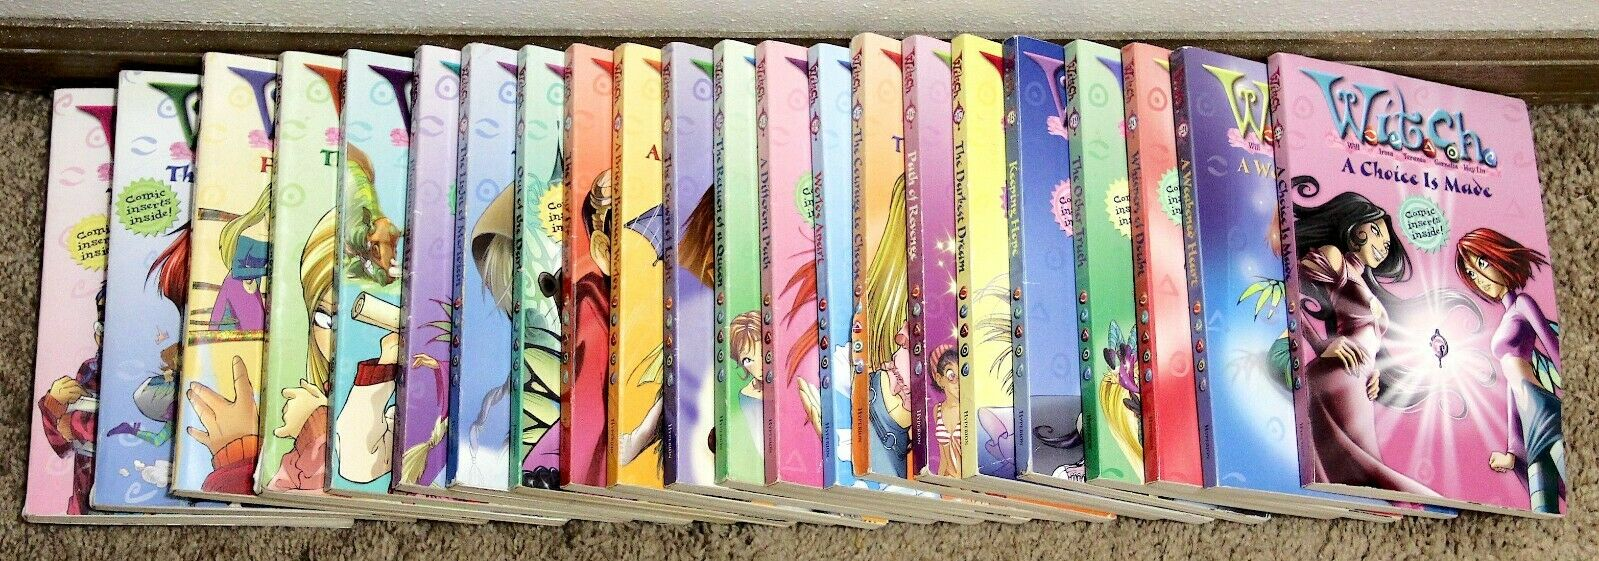 W.I.T.C.H. Series Books 1-22 by Disney and Elizabeth Lenhard (2004,… |